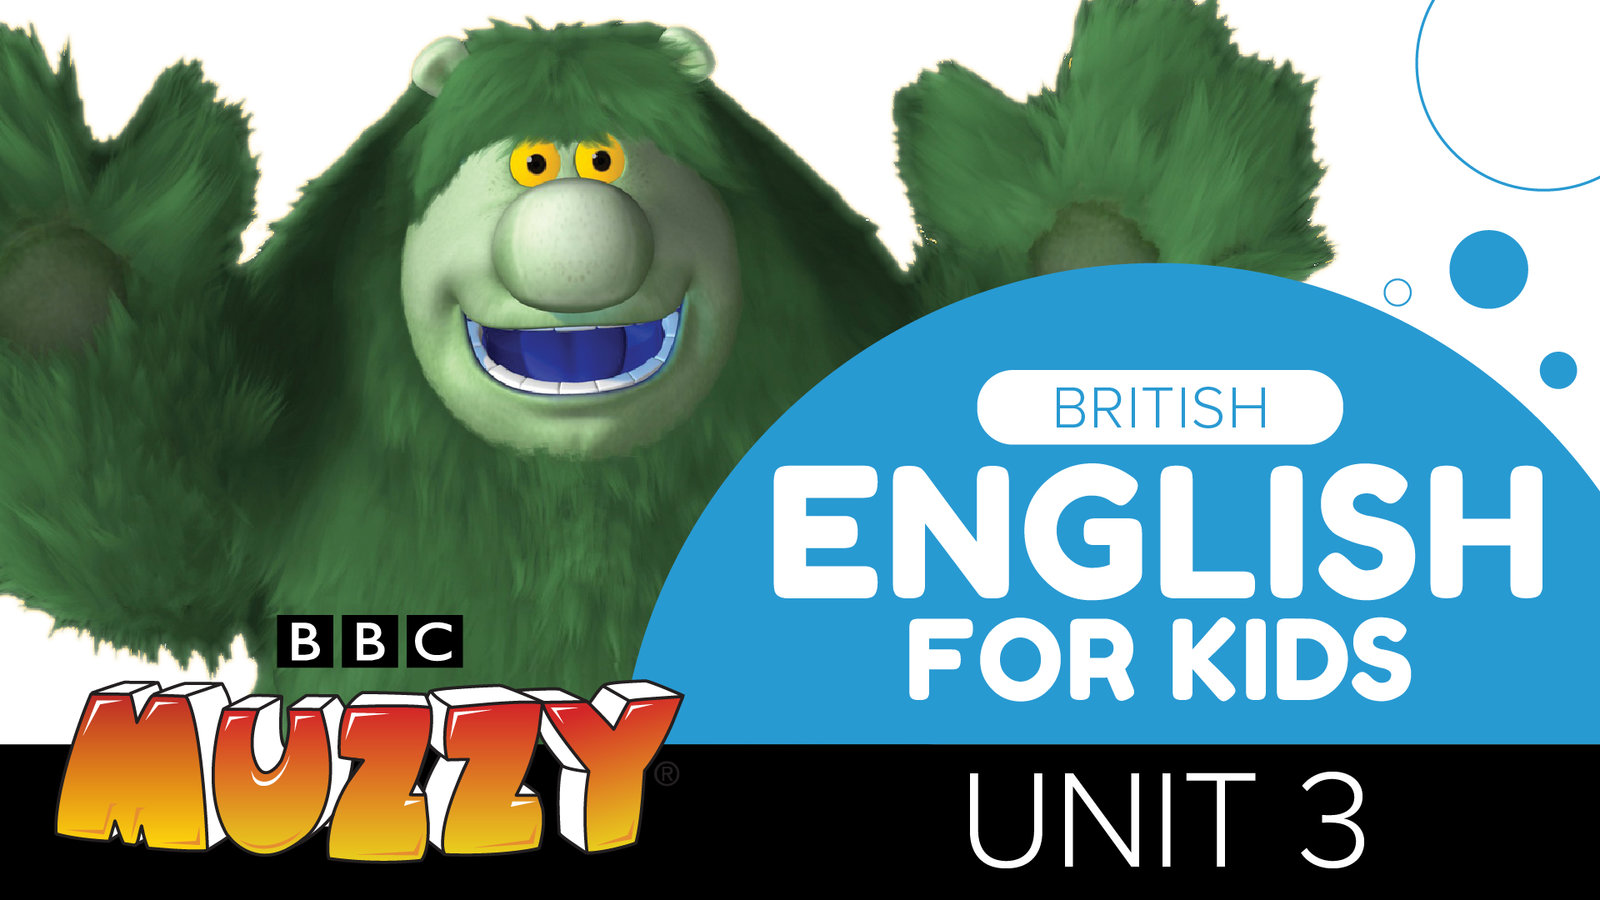 British English for Kids - Unit 3